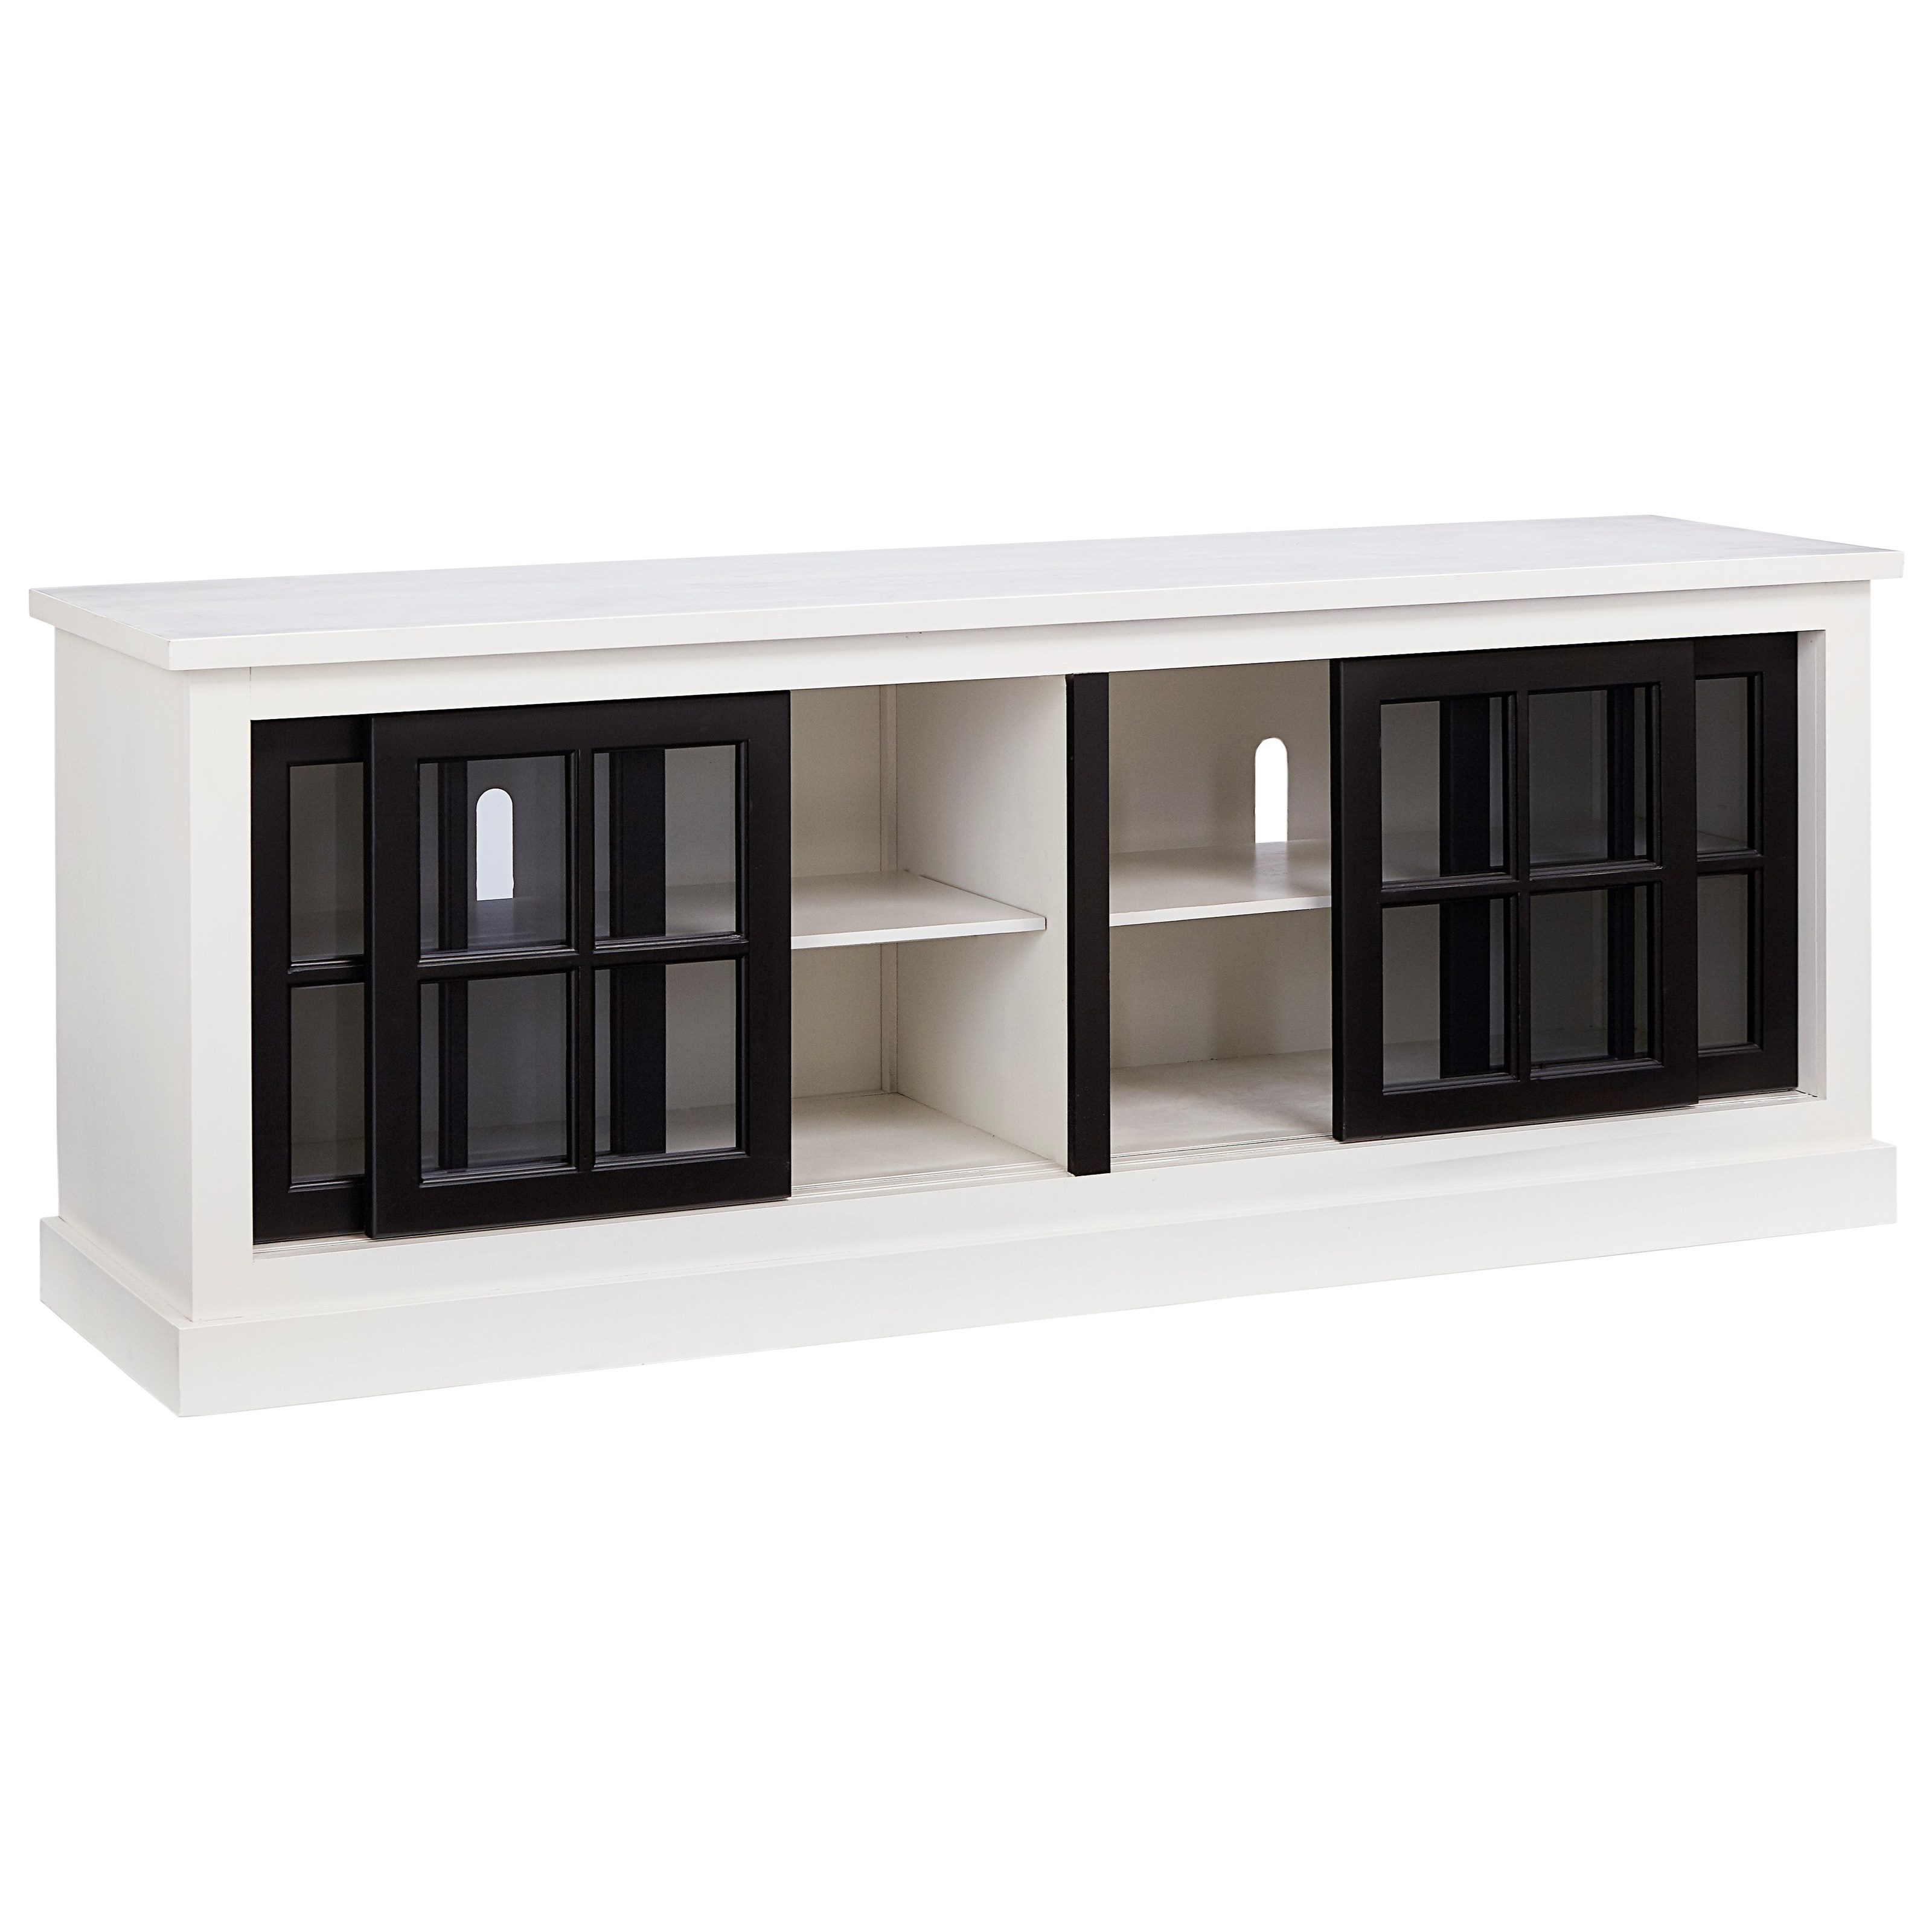 Habitat 74 Inch Console by Progressive Furniture at Simply Home by Lindy's